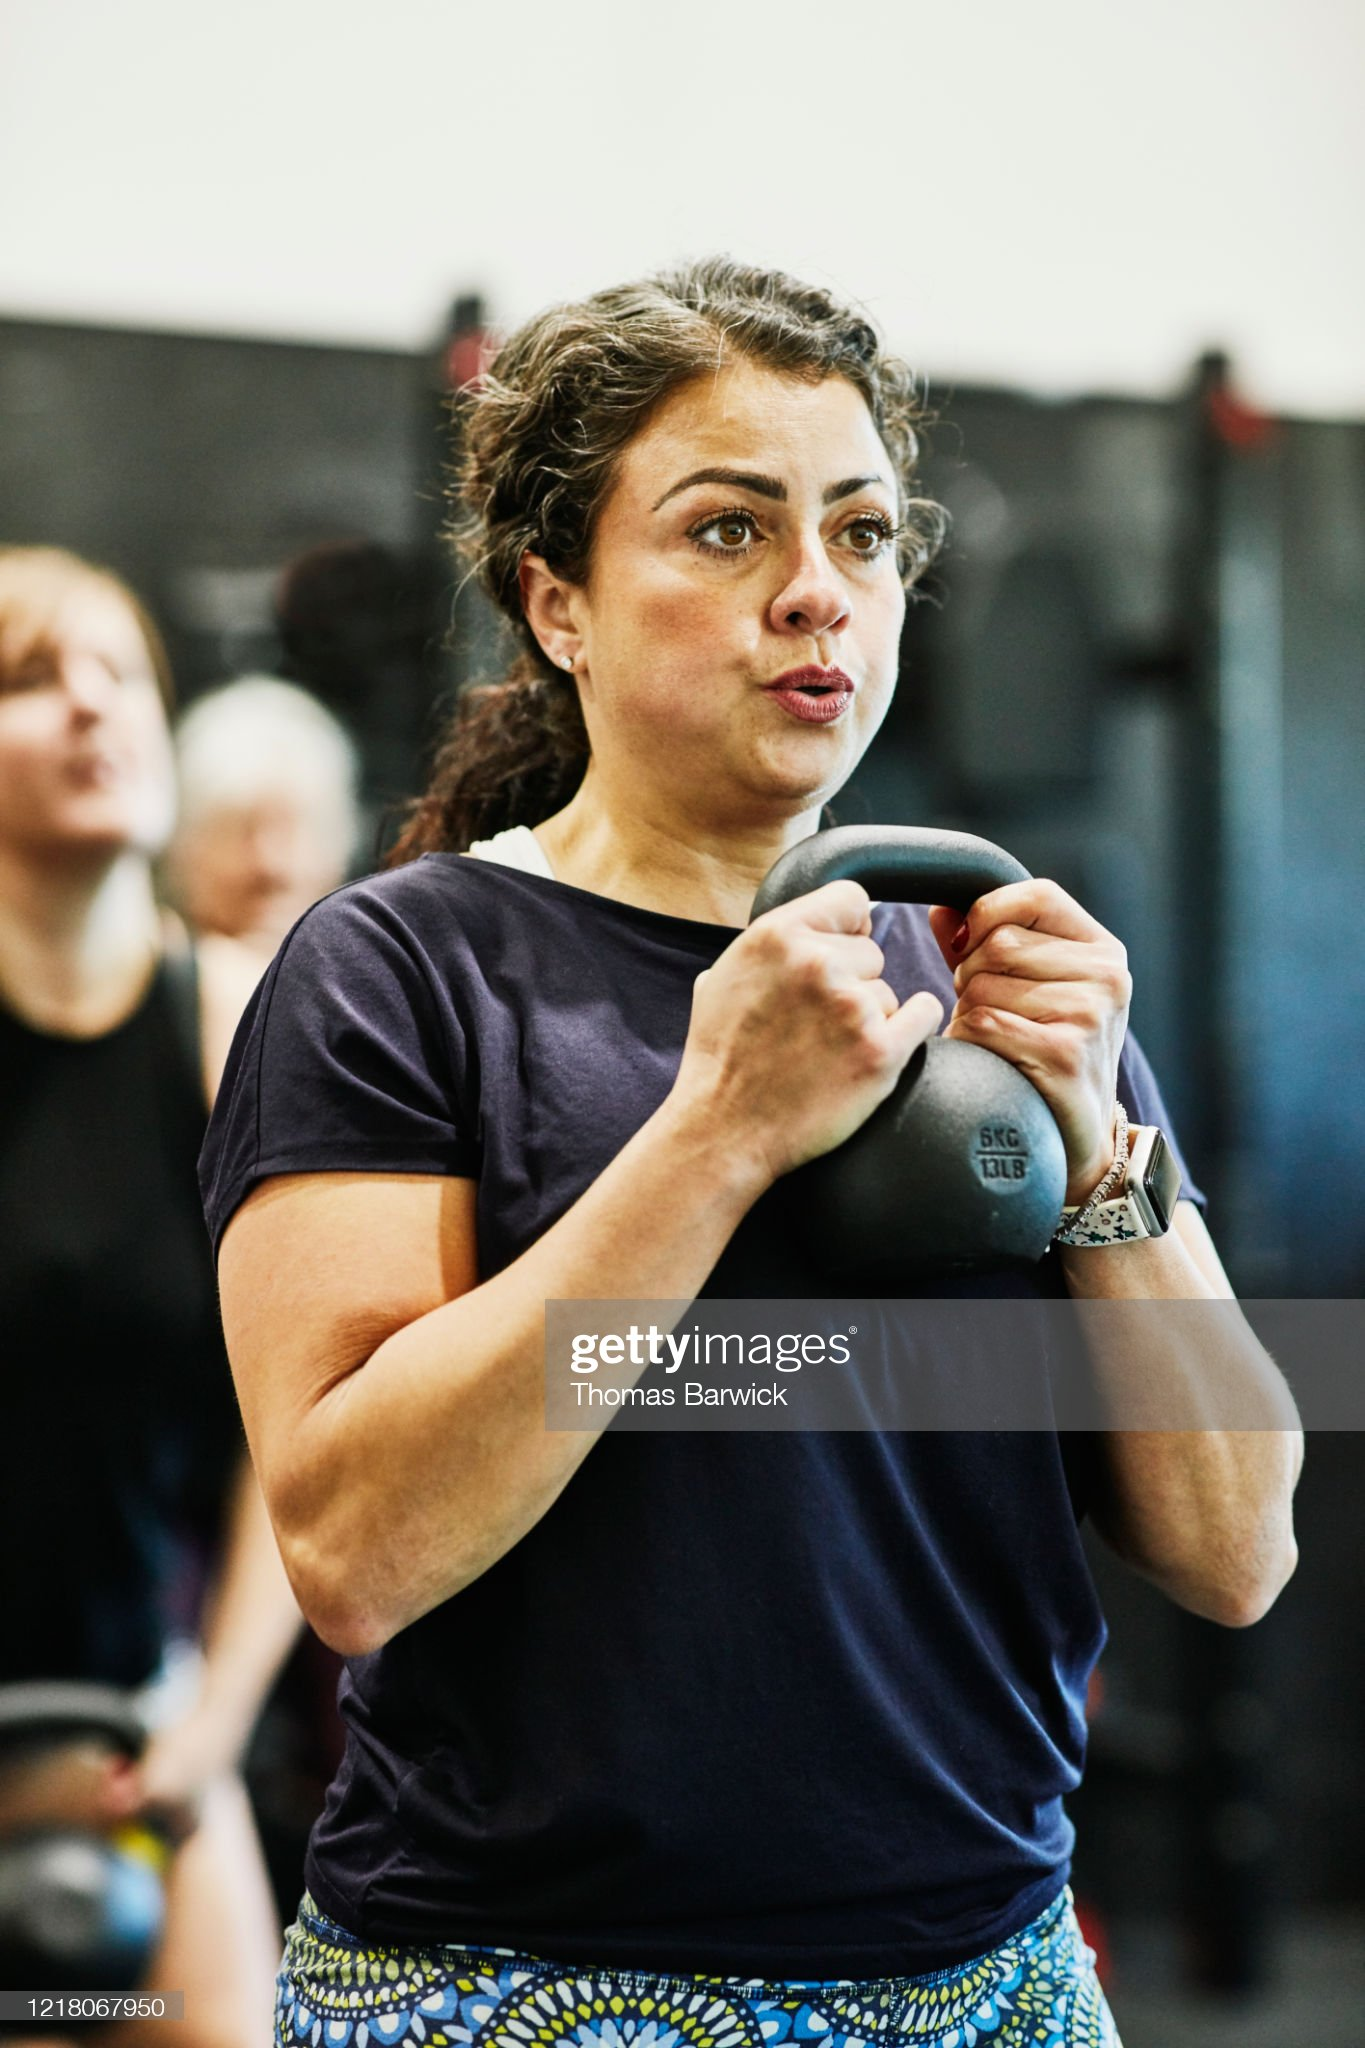 Woman doing kettlebell squats during fitness class in gym : 圖庫照片